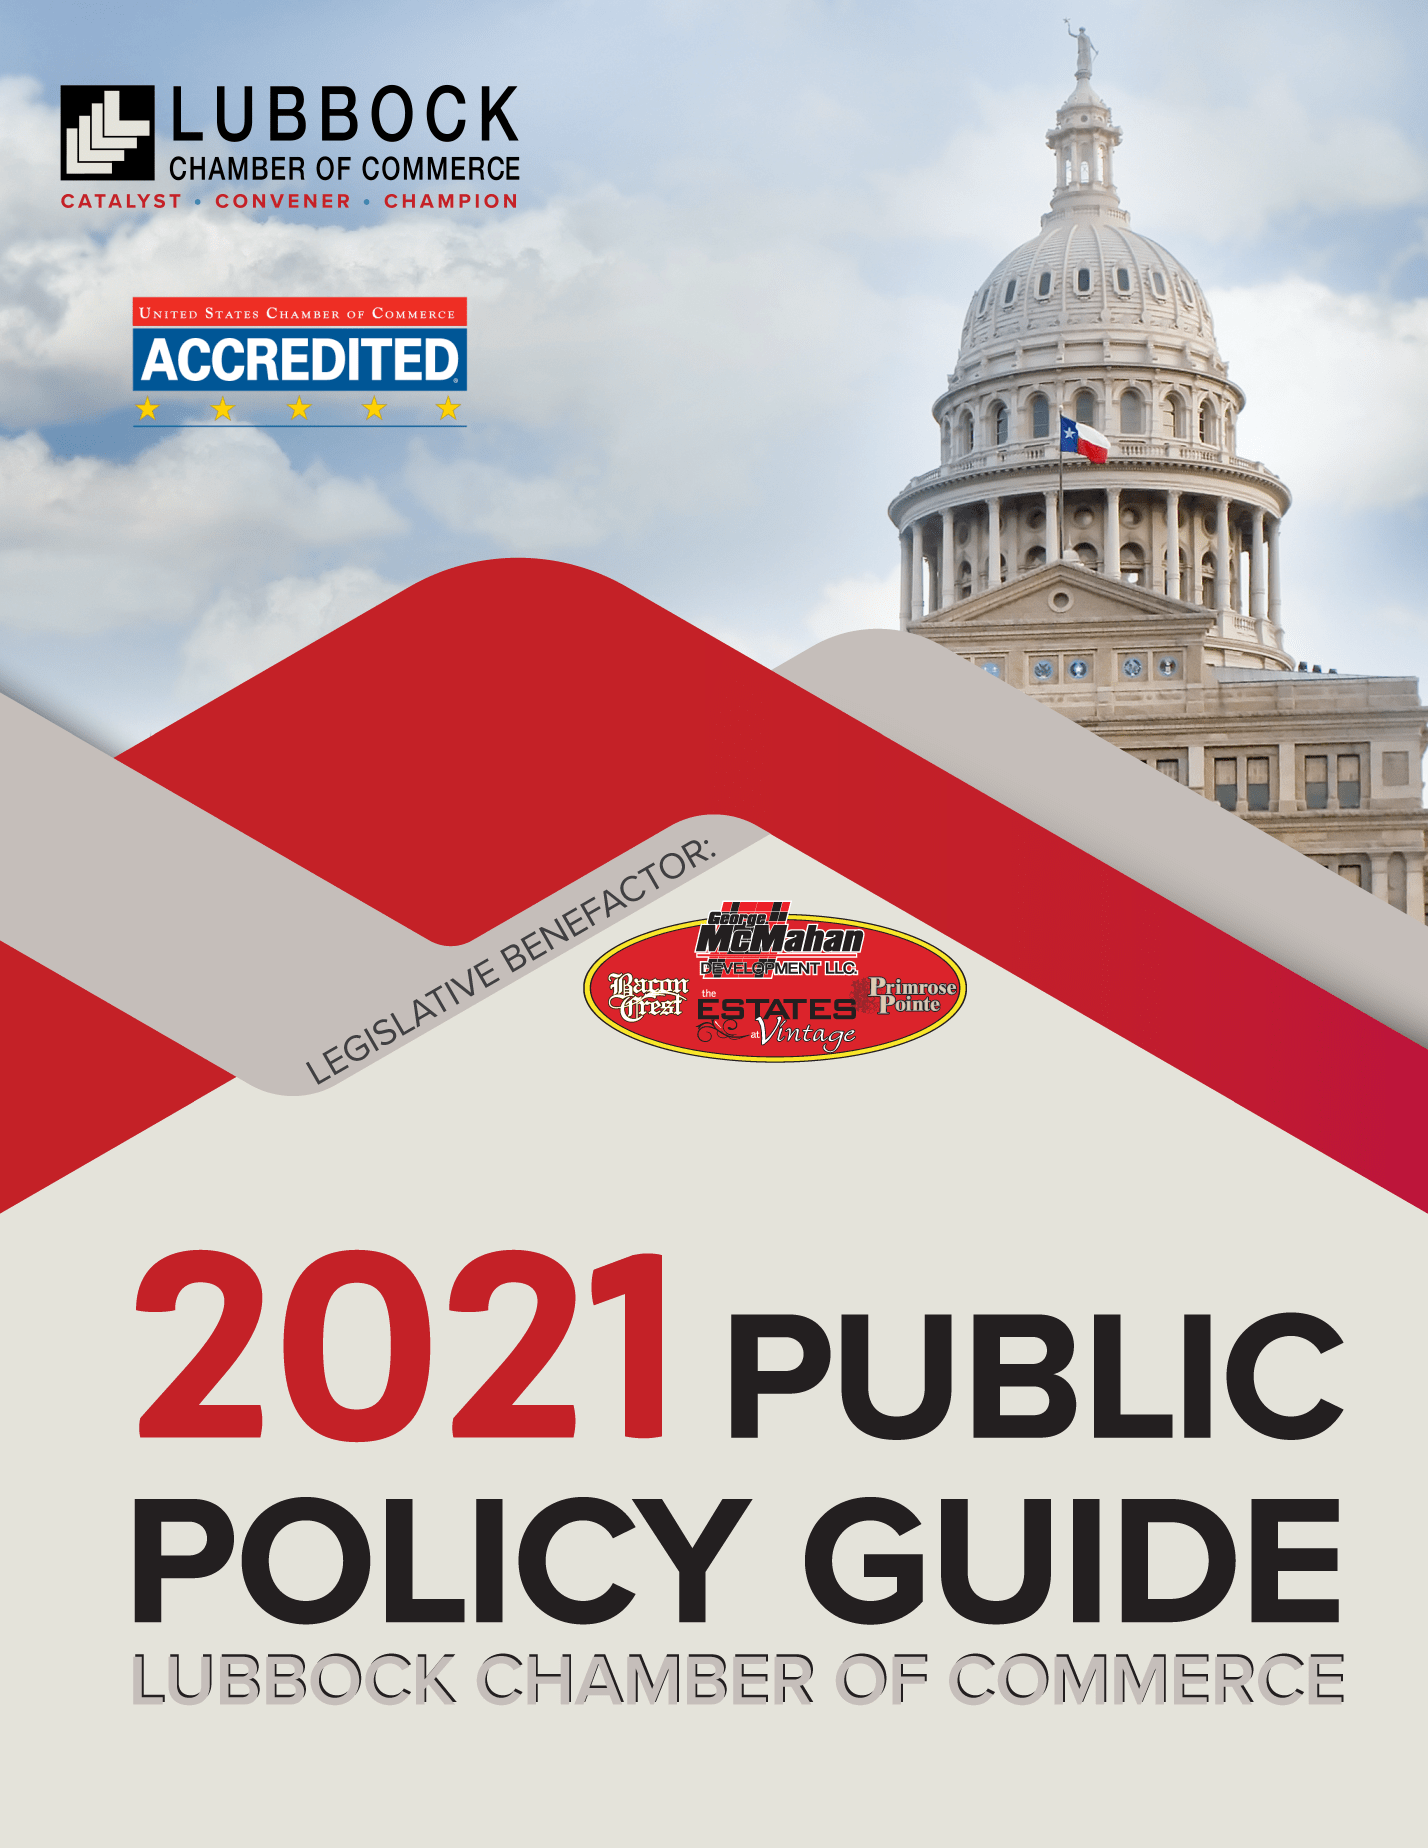 View the Chamber's 2021 Public Policy Guide